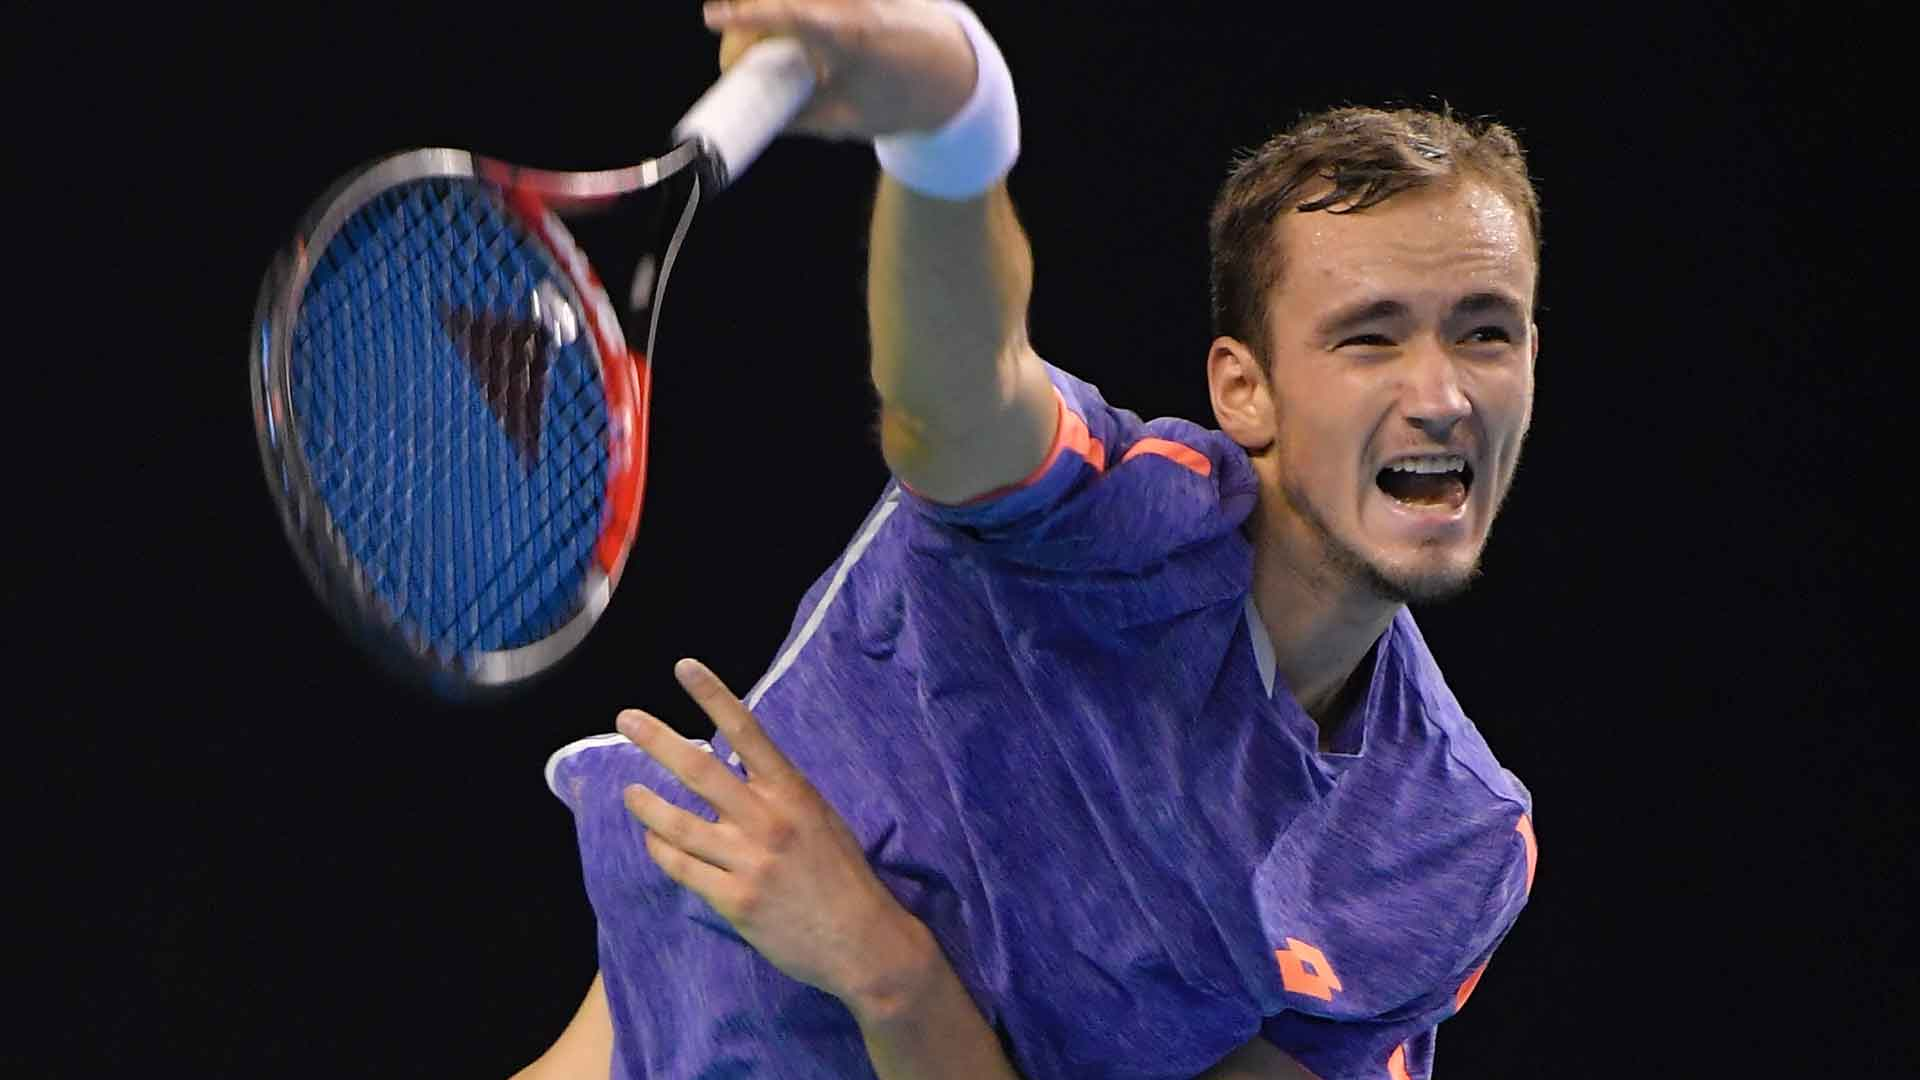 Qualifier Daniil Medvedev reached his first ATP World Tour quarter-final in Moscow.